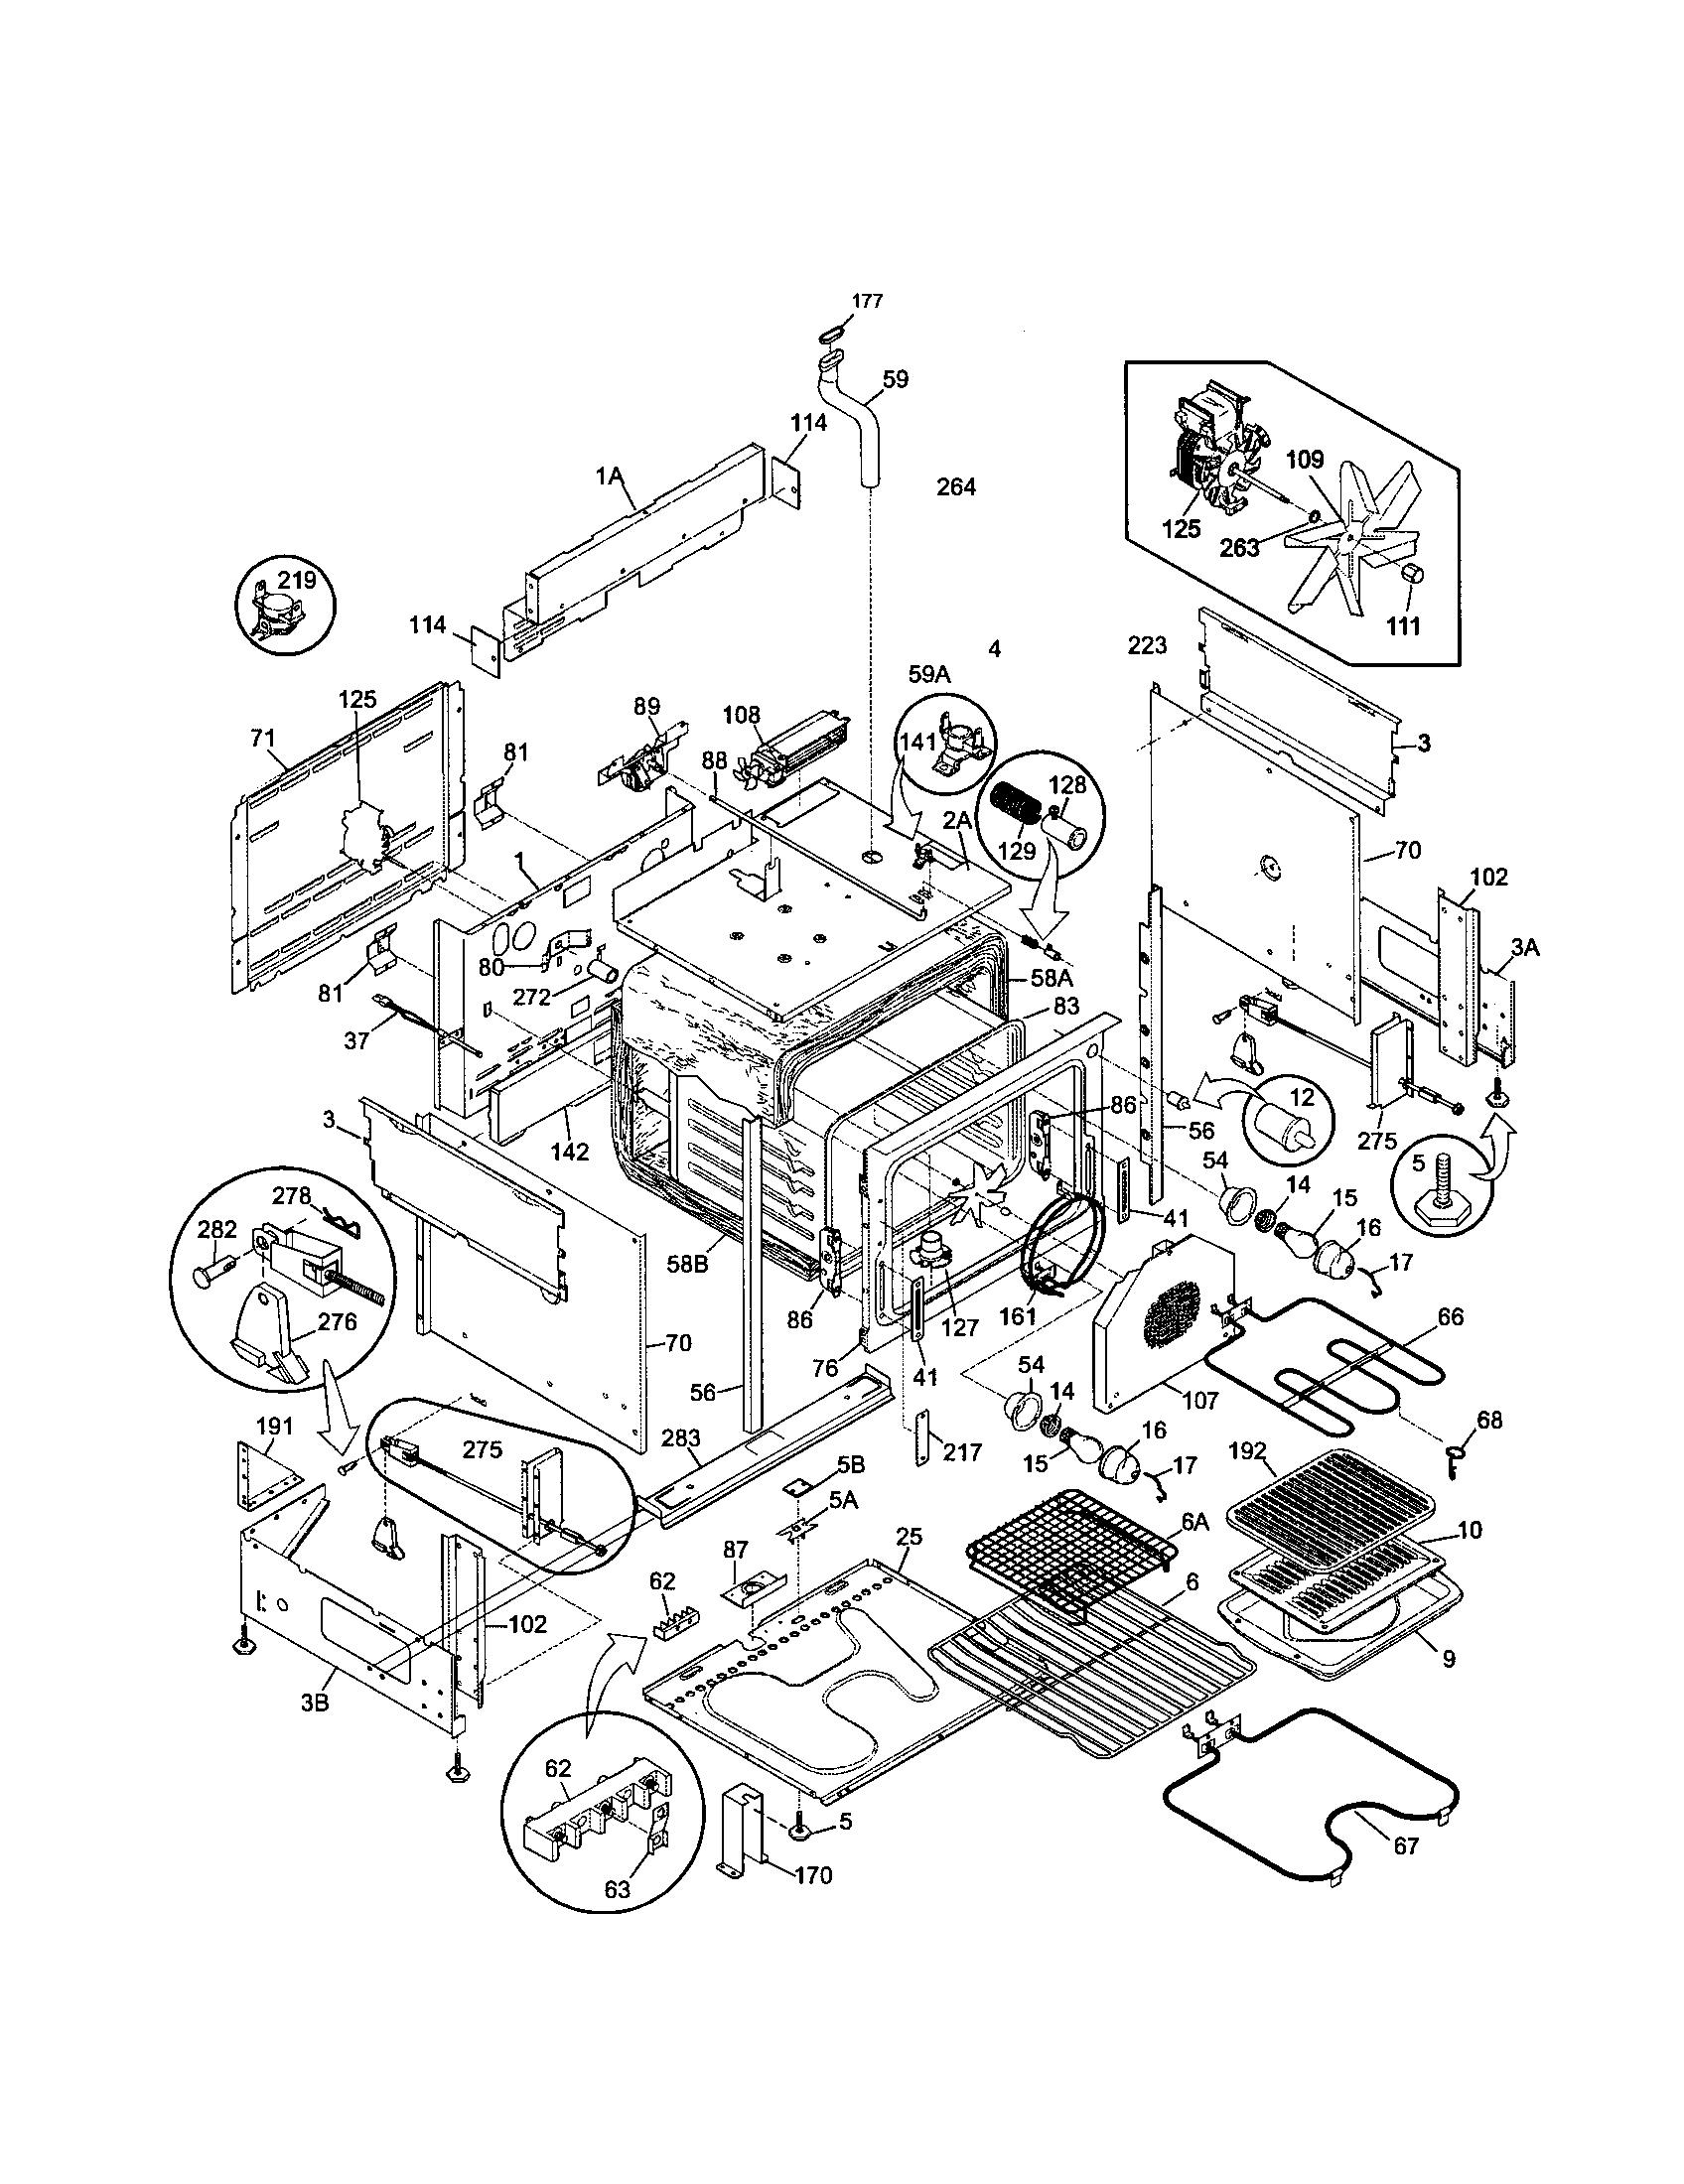 Whirlpool Dishwasher Electrical Schematic